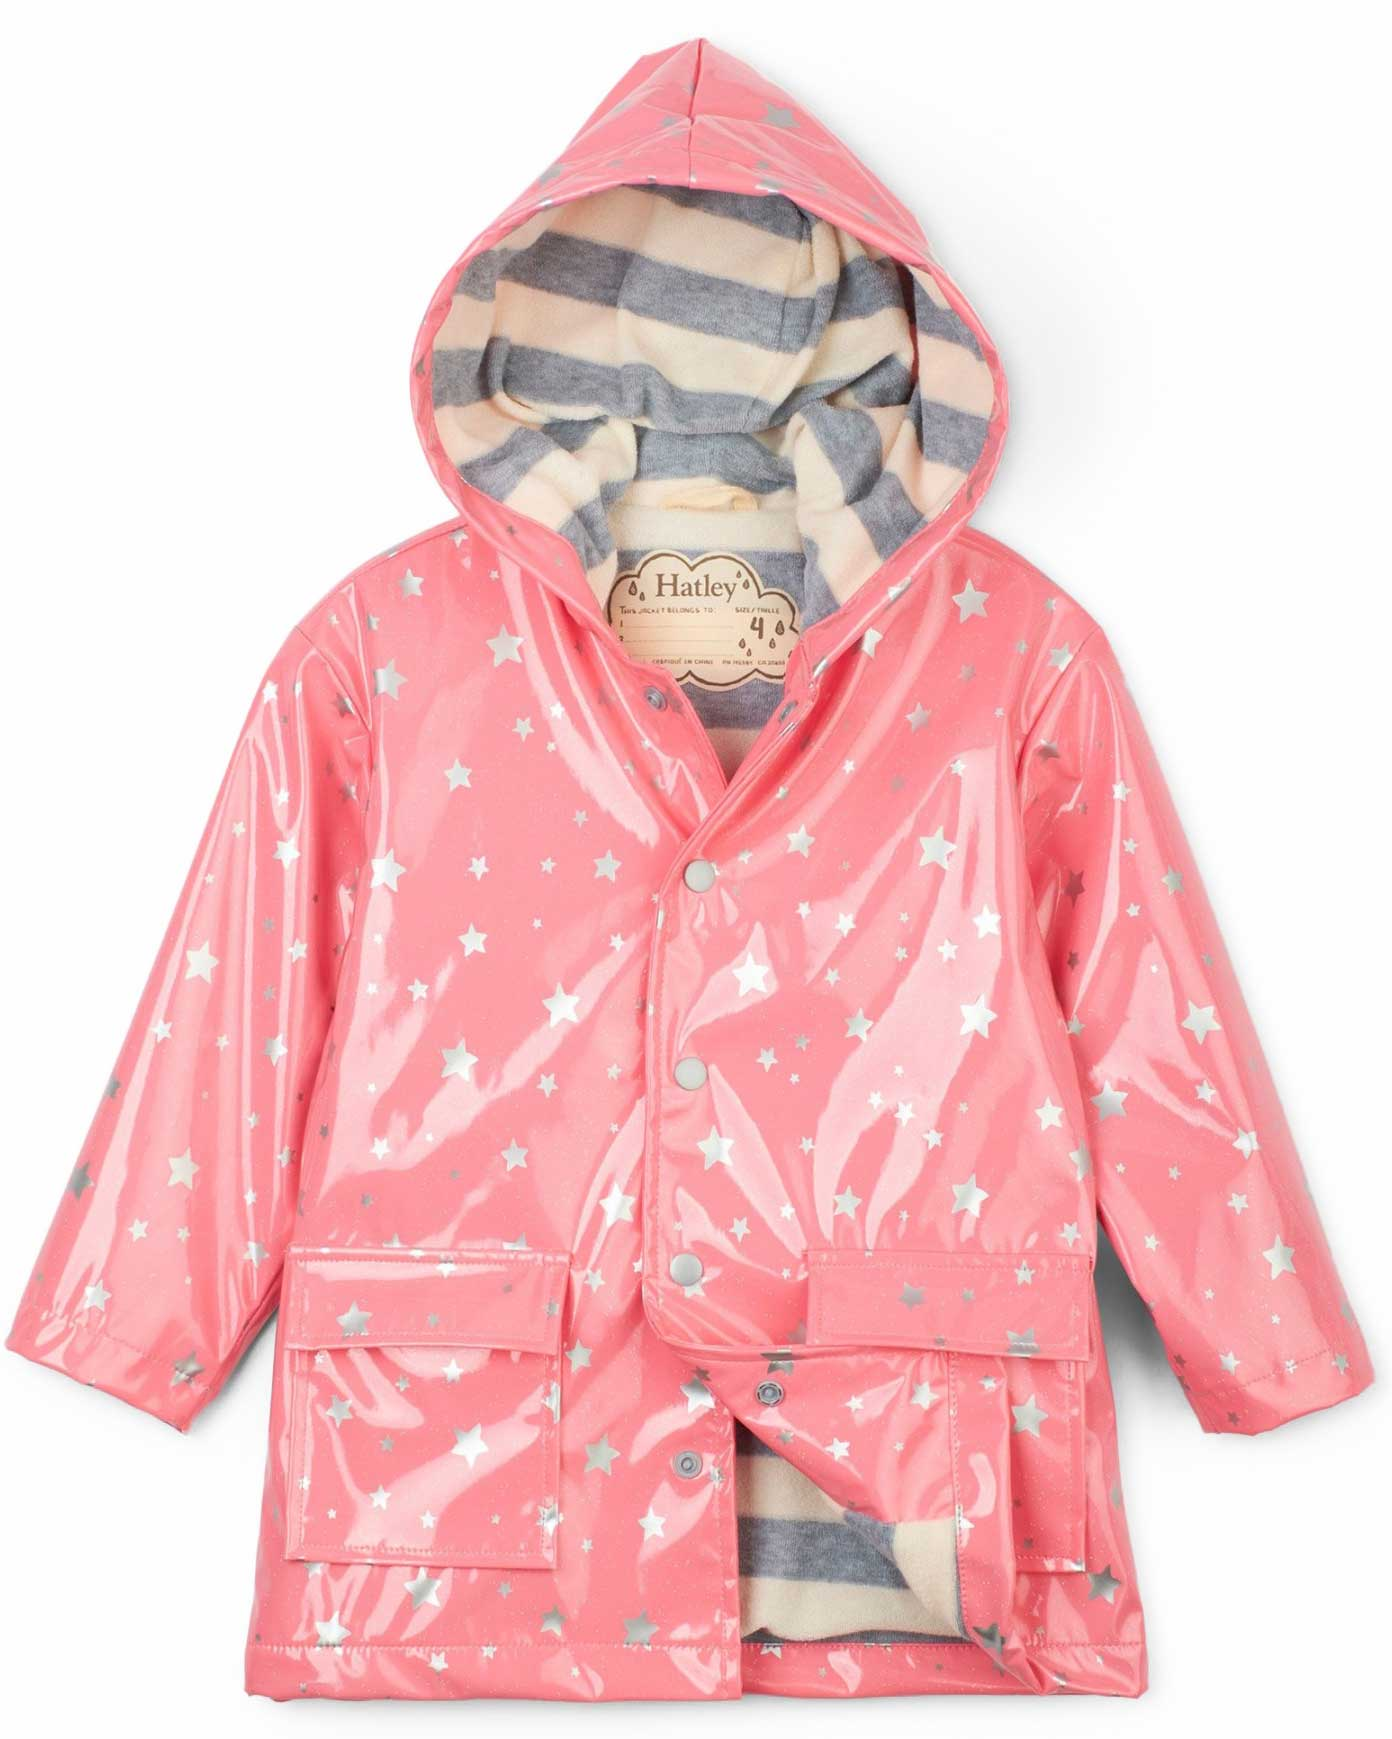 Metallic Stars Raincoat